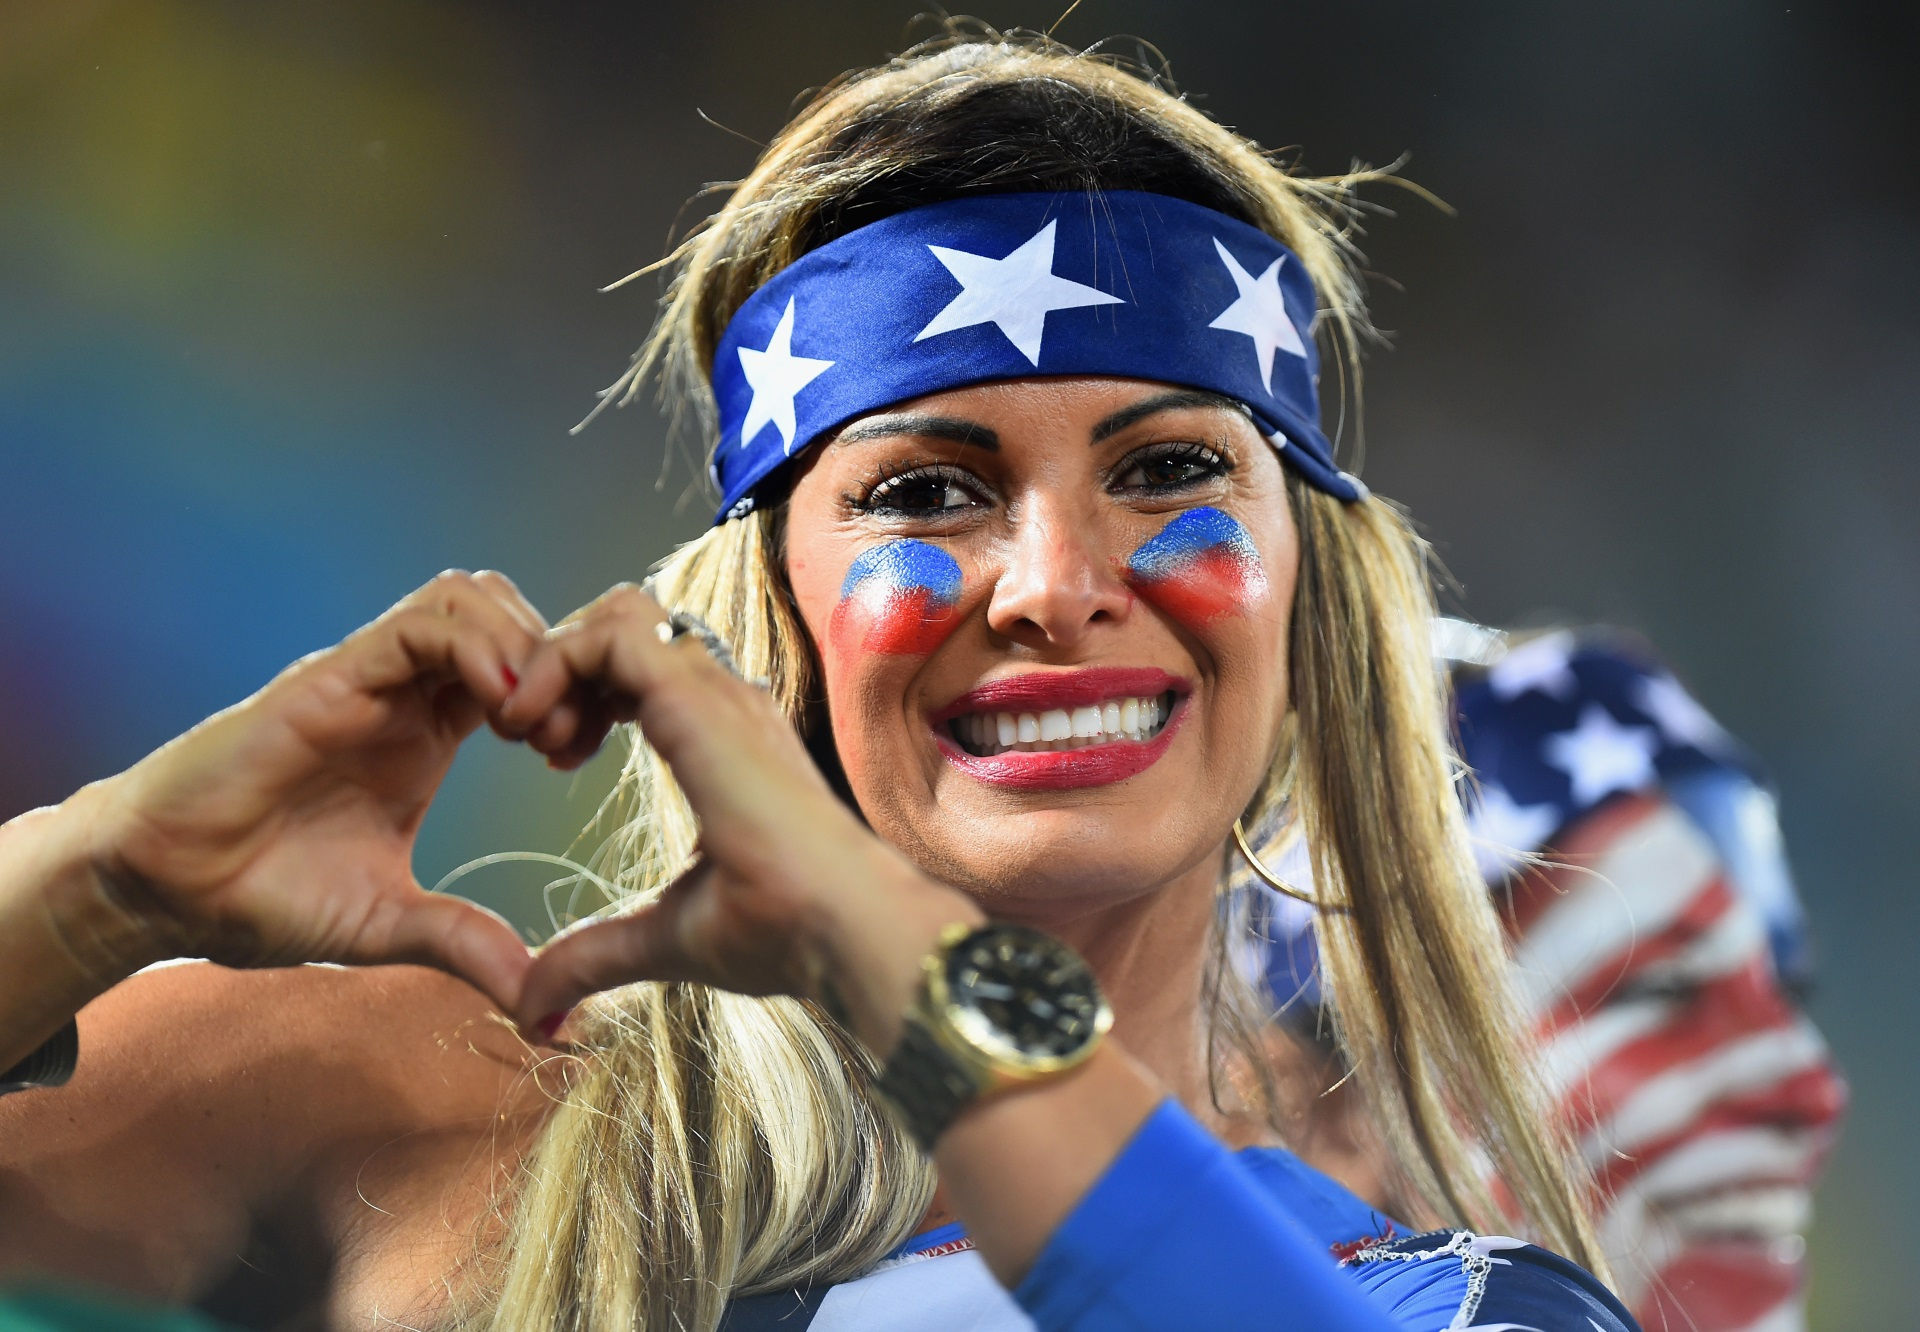 les supportrices de la coupe du monde 2014